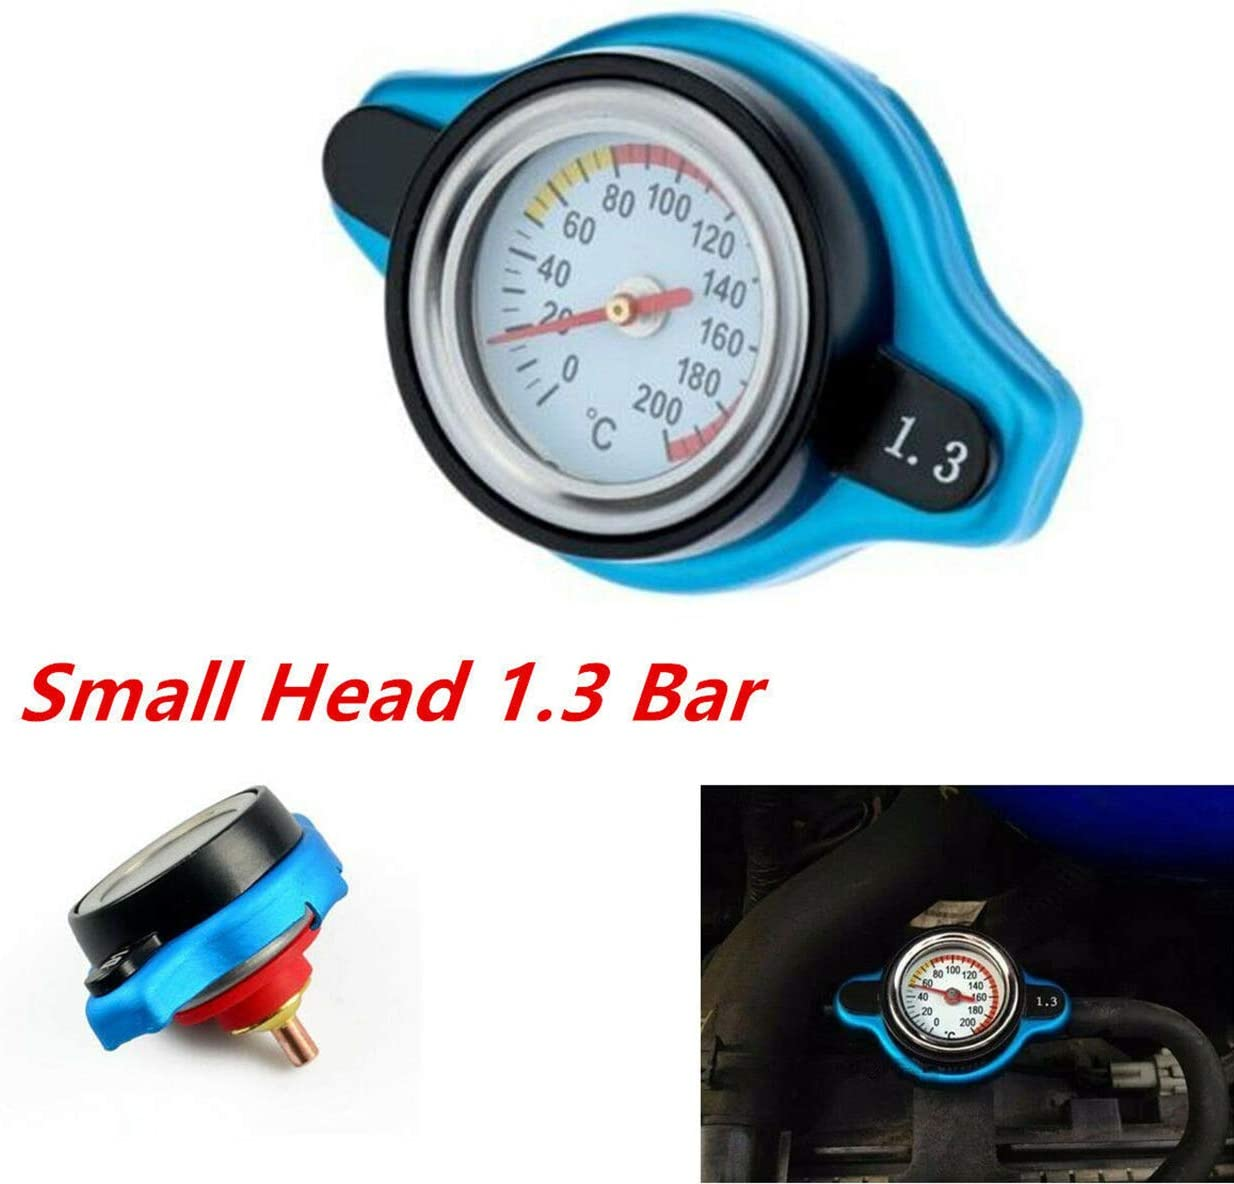 DEDC Small Head Car Temperature Gauge Radiator Cap with Utility Safe 1.3 Bar Thermostatic Radiator Cap 13 PSI Pressure Rating Temperature Gauge